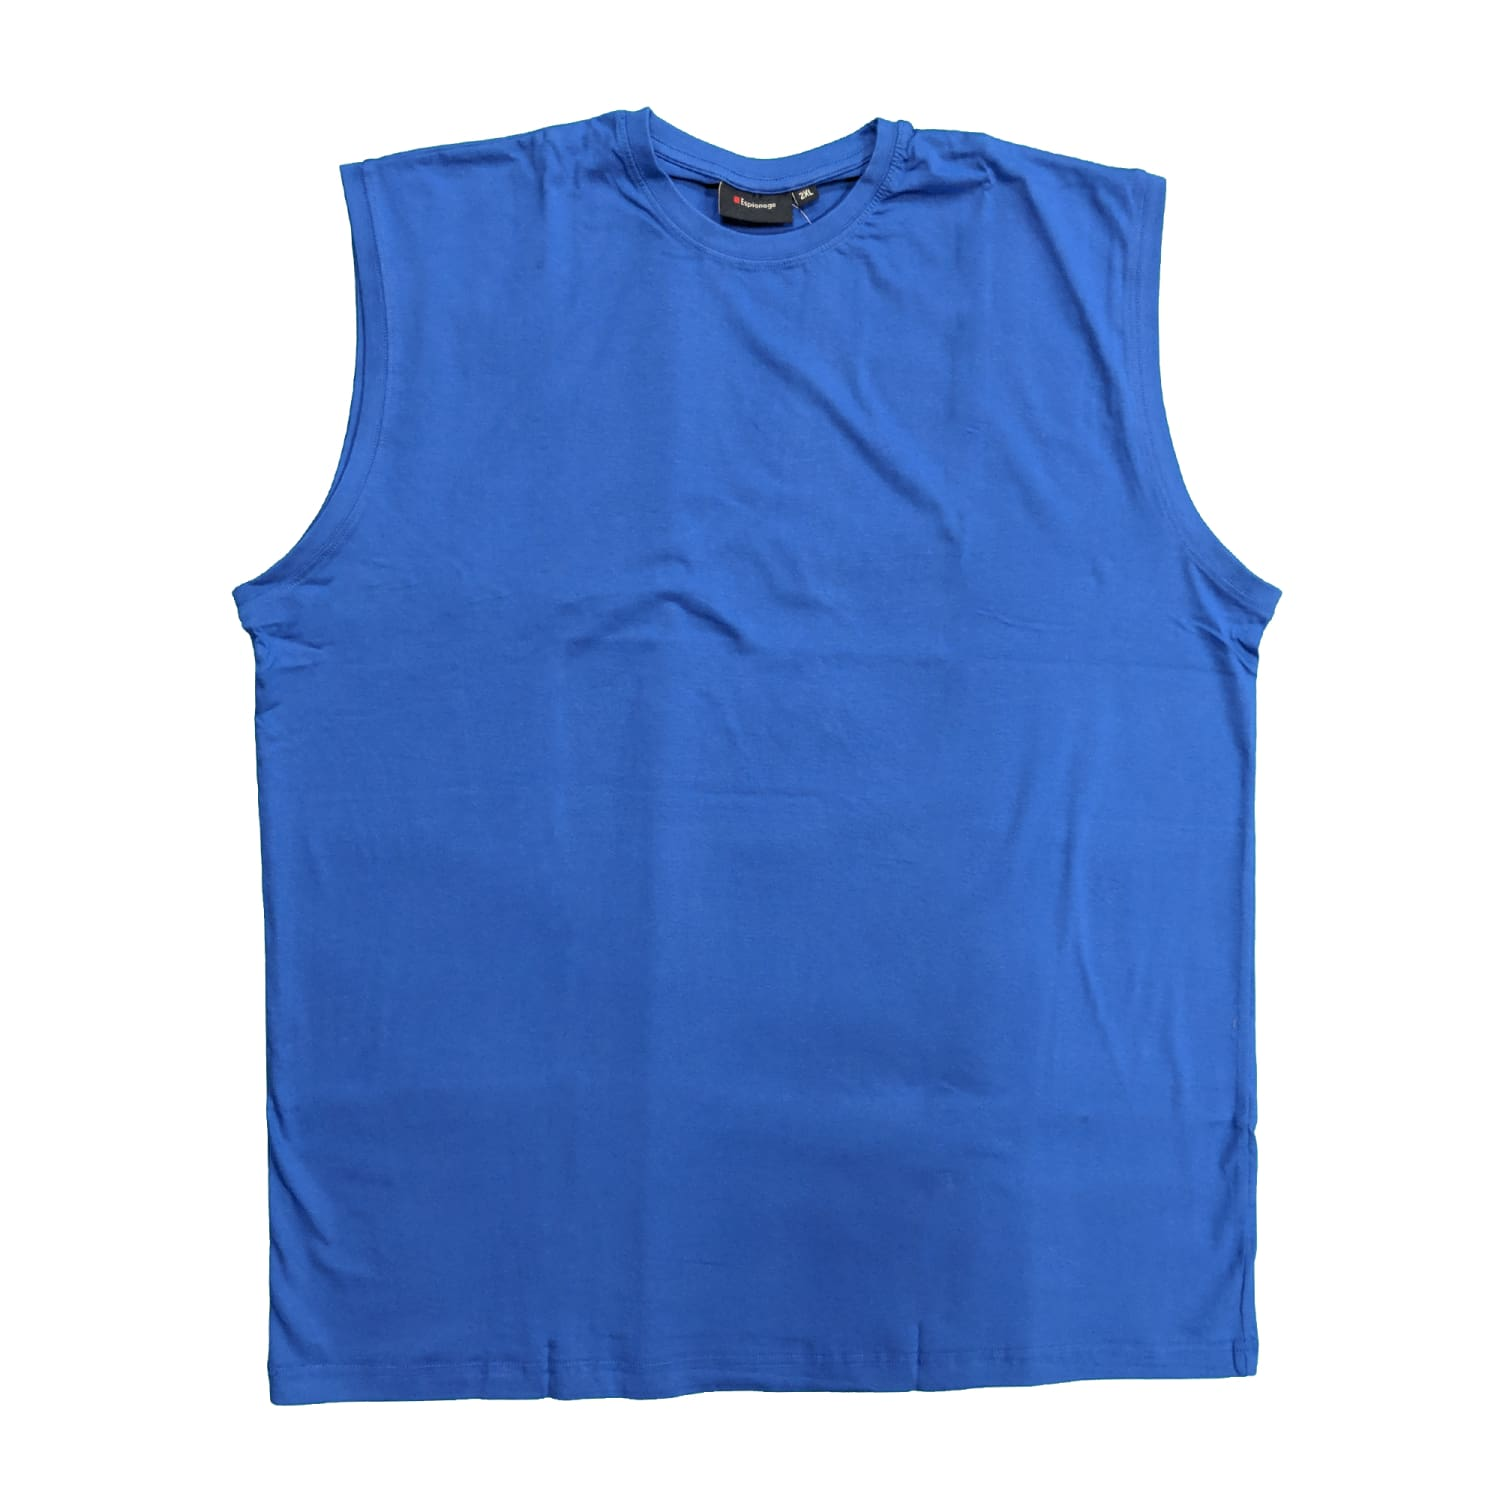 Espionage Sleeveless Tee - T113 - Royal 1